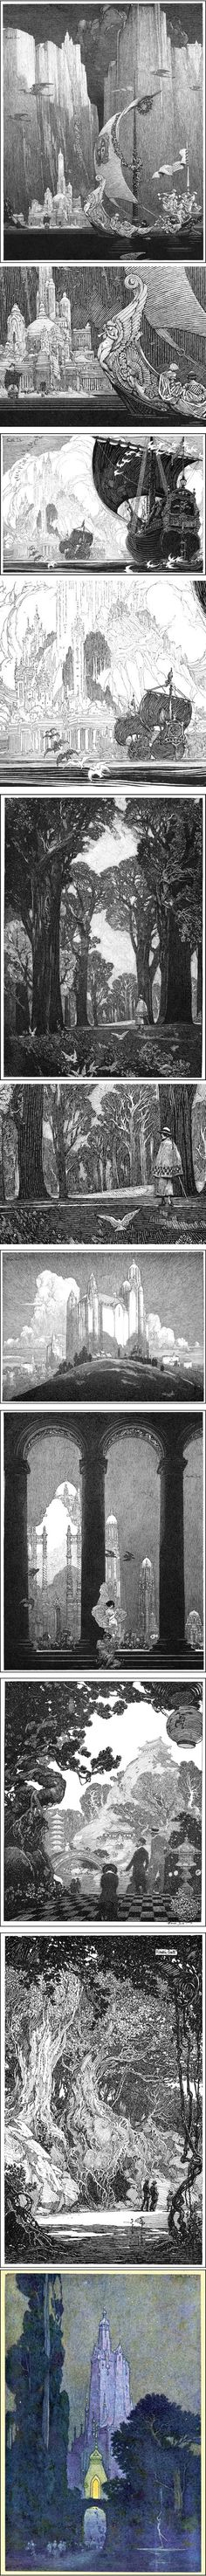 Franklin Booth pen and ink illustrations